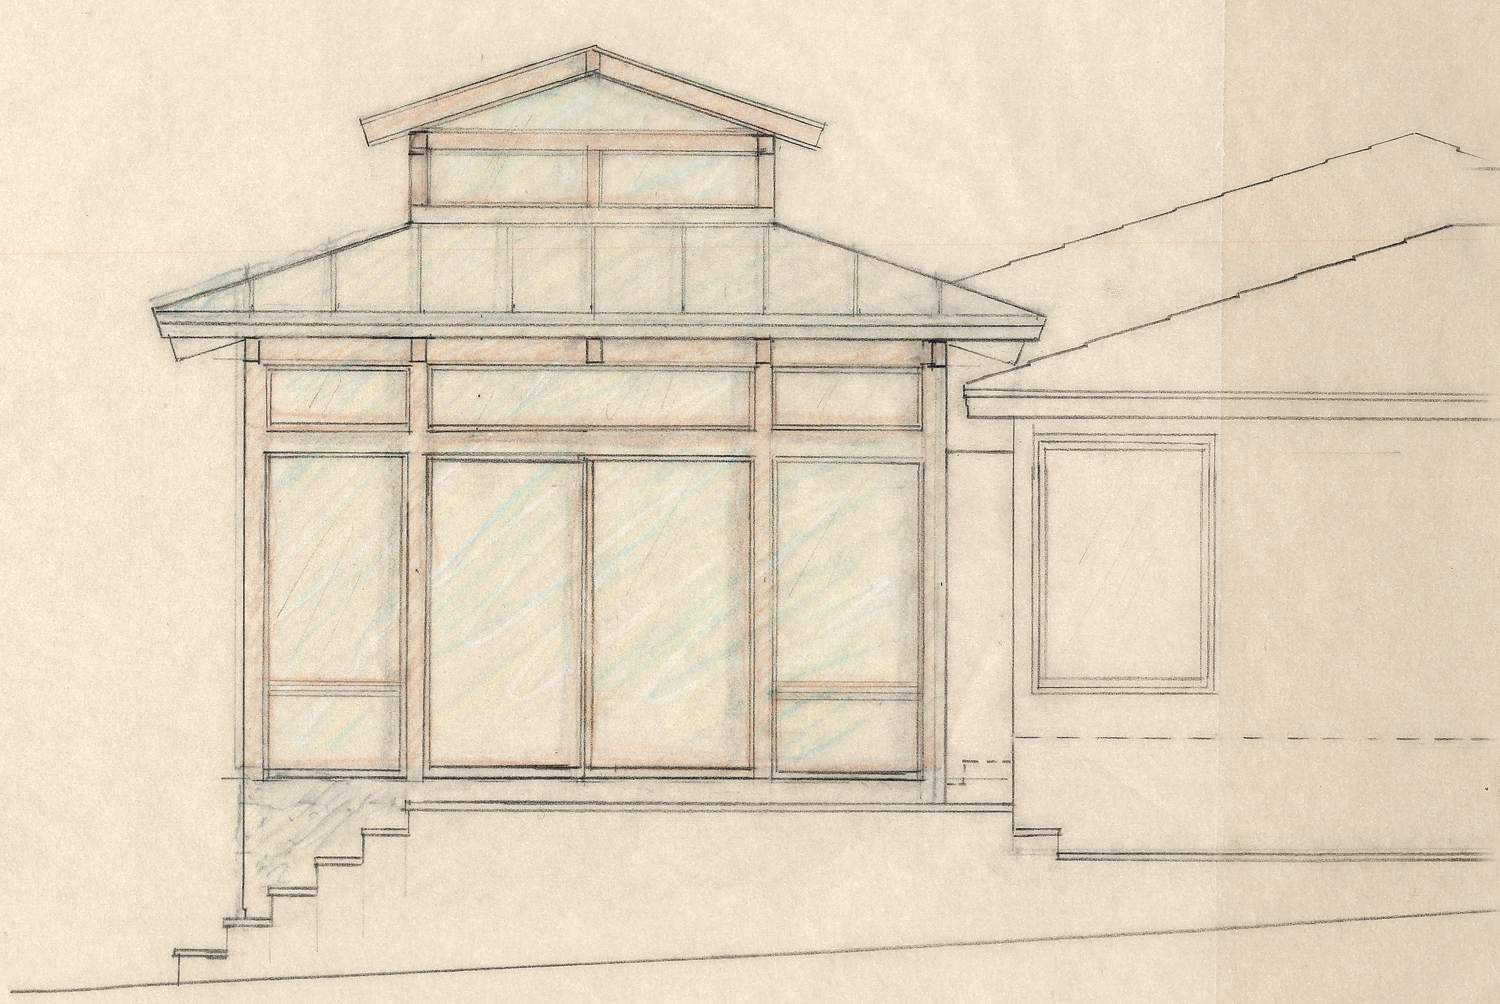 Color pencil drawings were used to study material and window options.